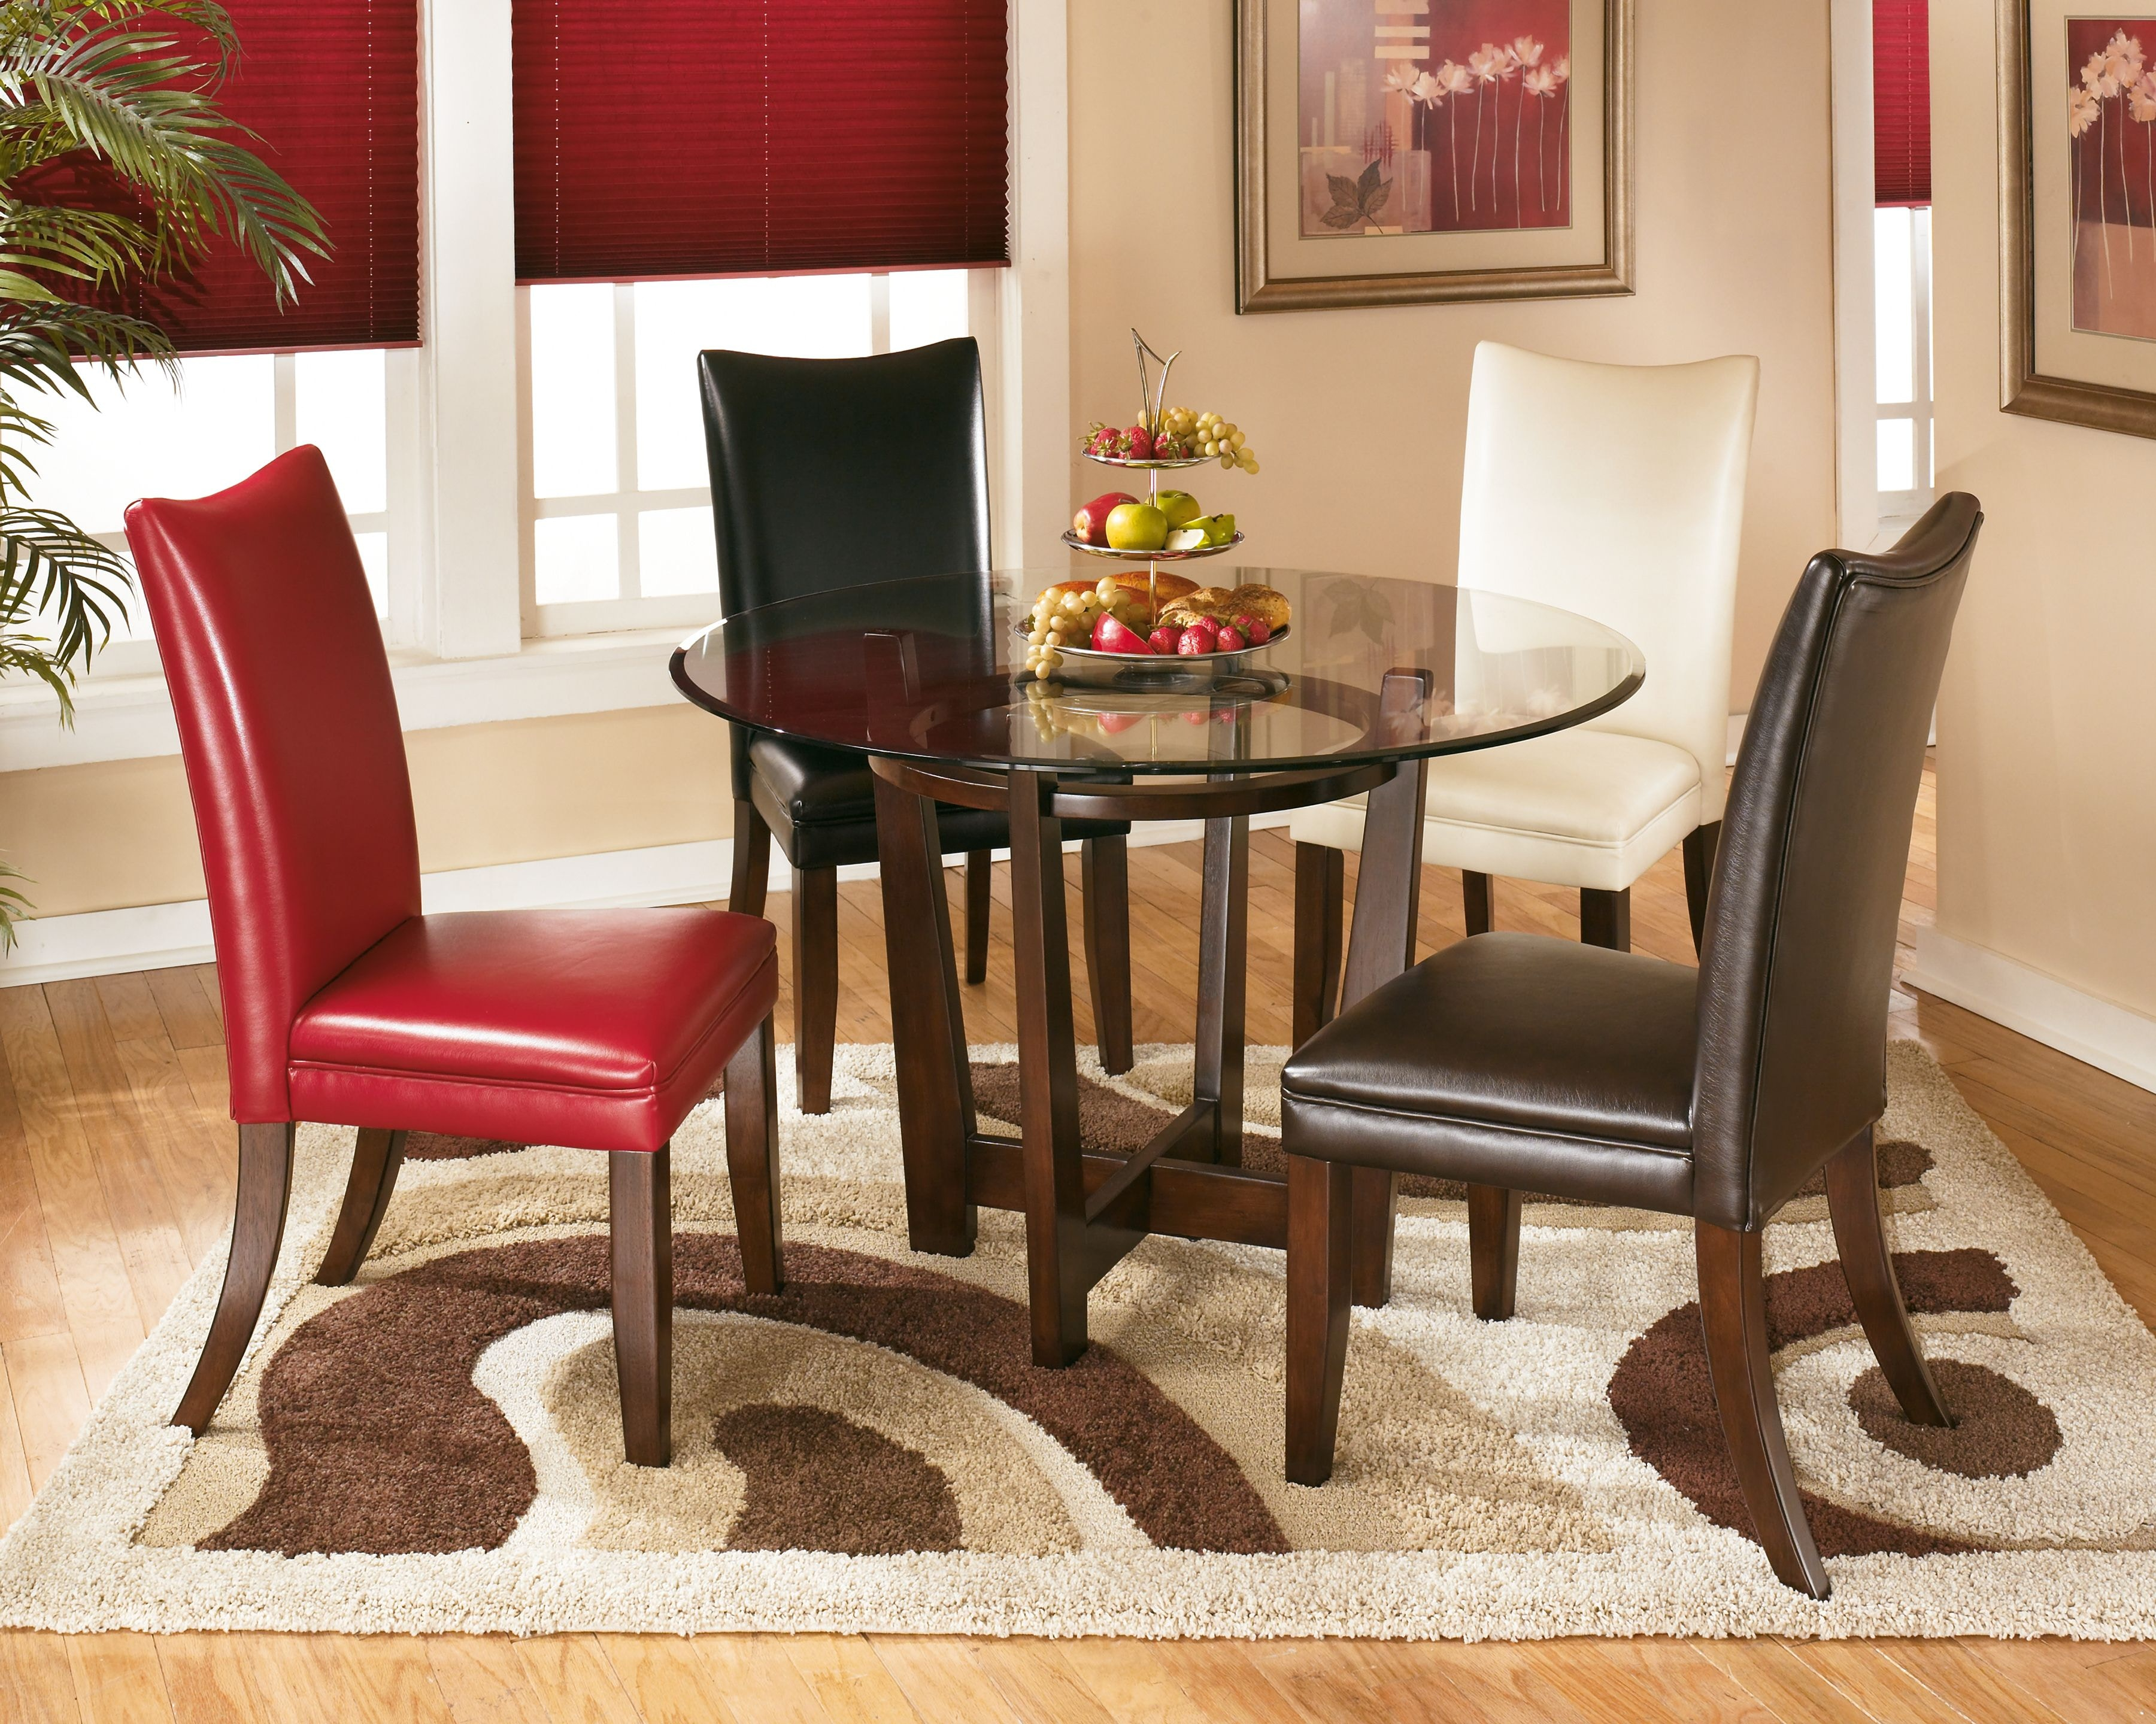 arlington round sienna pedestal dining room table w chestnut finish. d357-15. round dining room table arlington sienna pedestal w chestnut finish